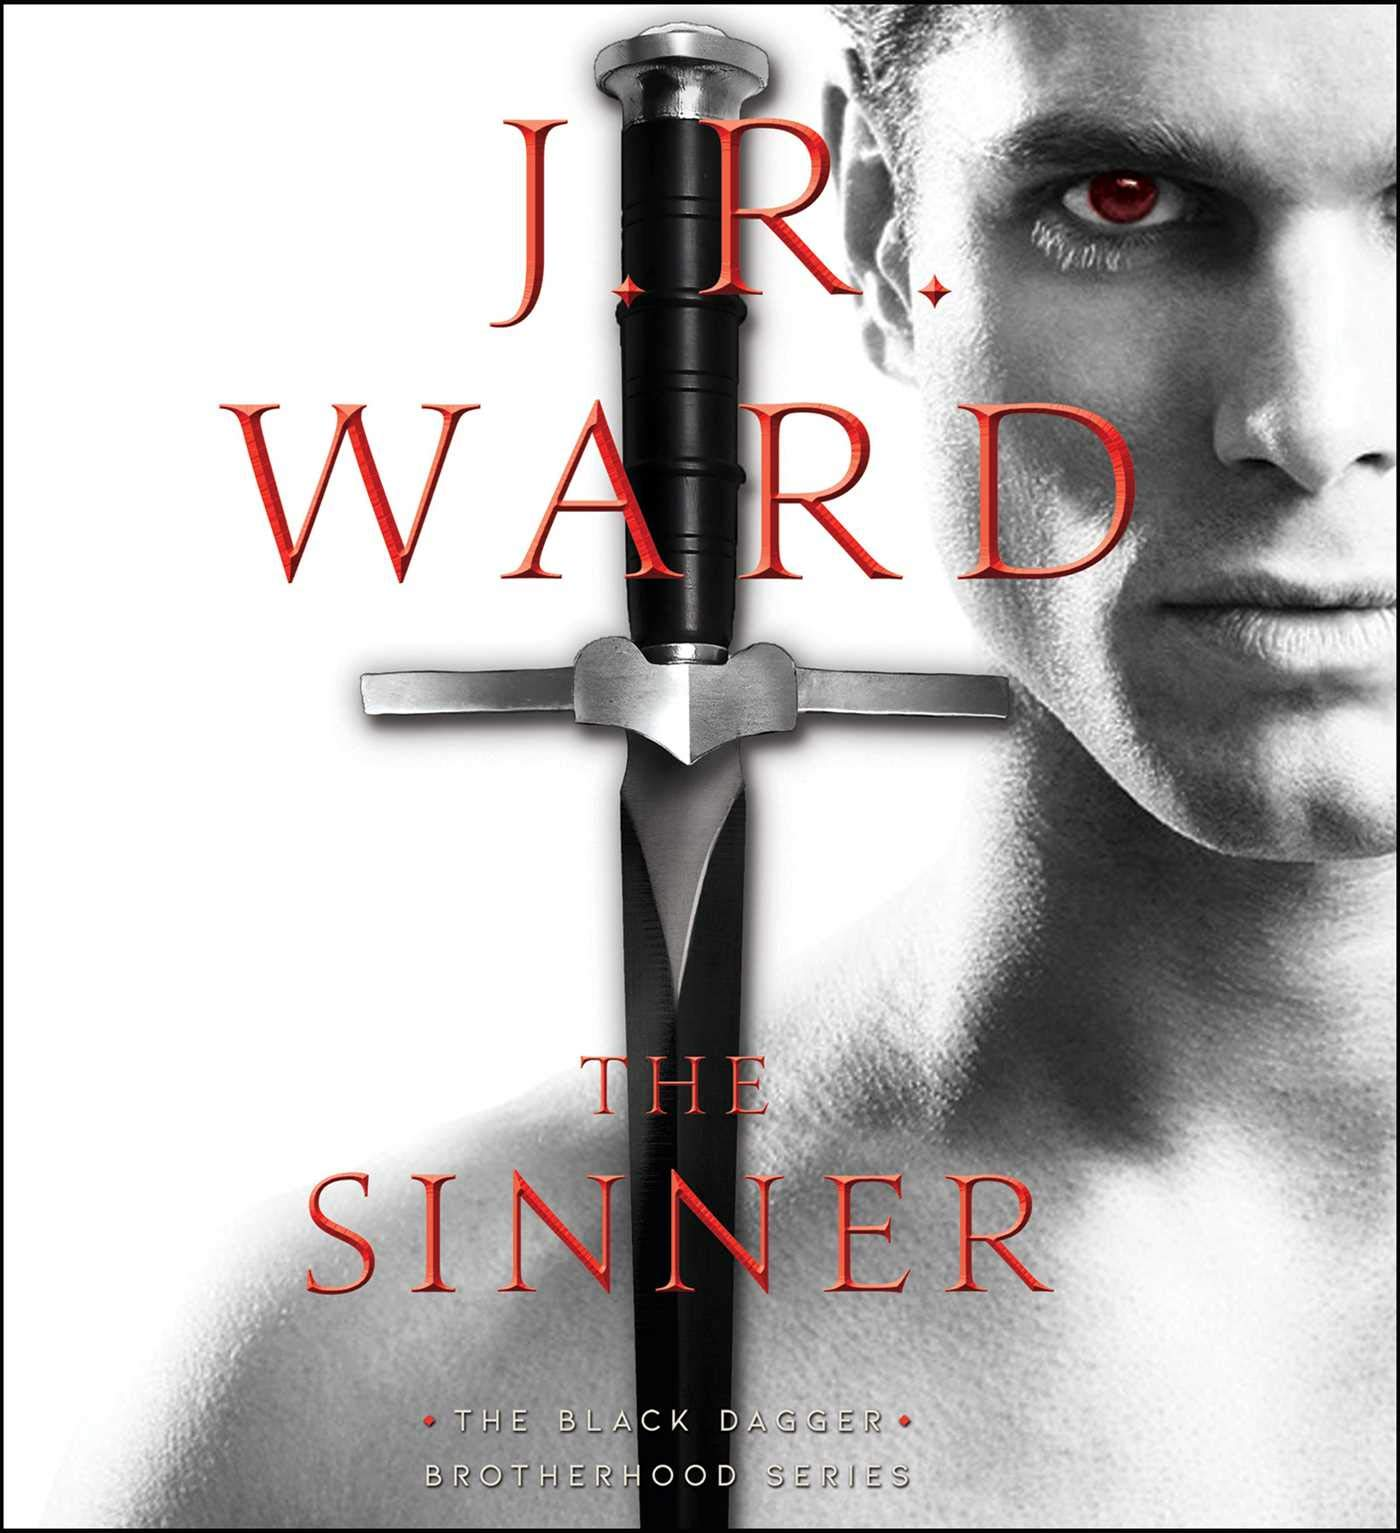 The Sinner (18) (The Black Dagger Brotherhood series) by Simon & Schuster Audio